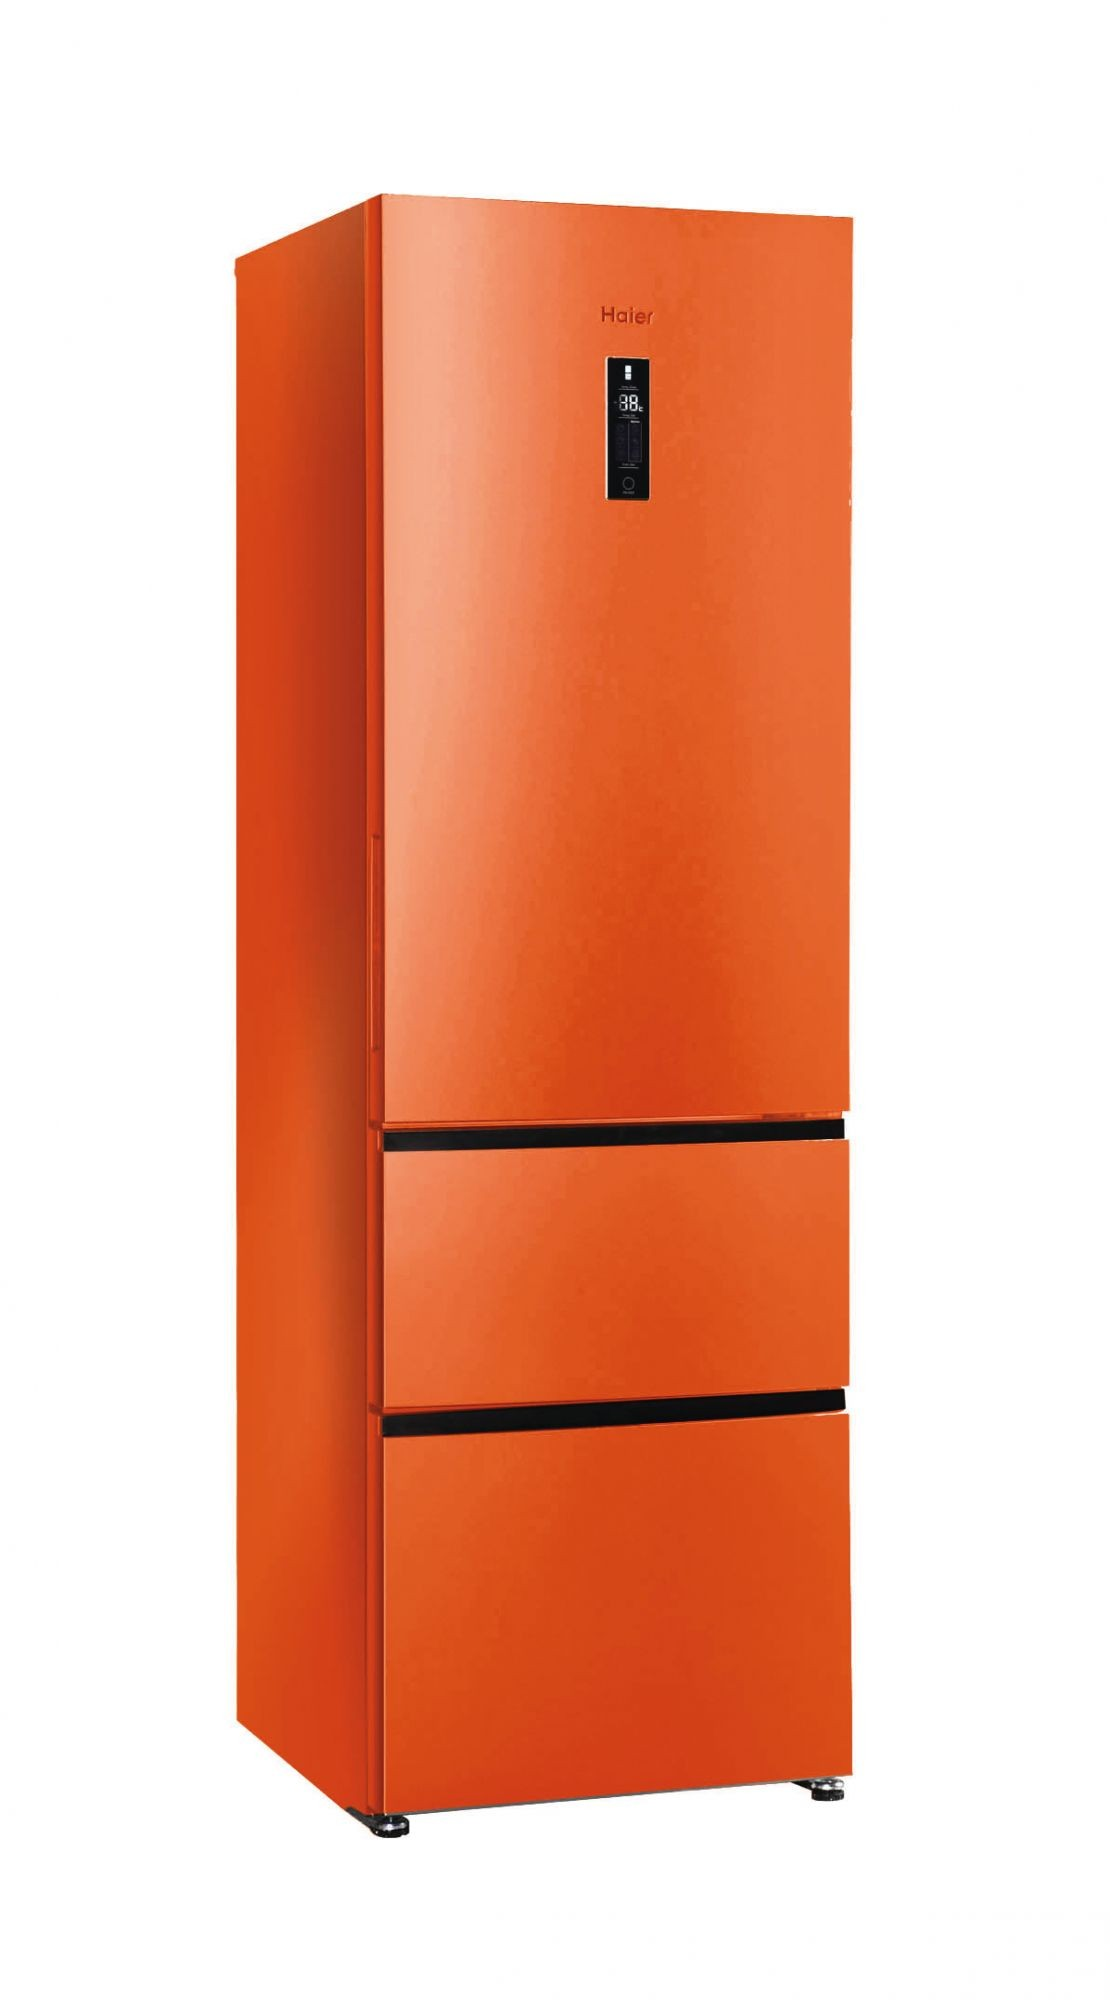 a2fe735coj orange haier elektro stand. Black Bedroom Furniture Sets. Home Design Ideas